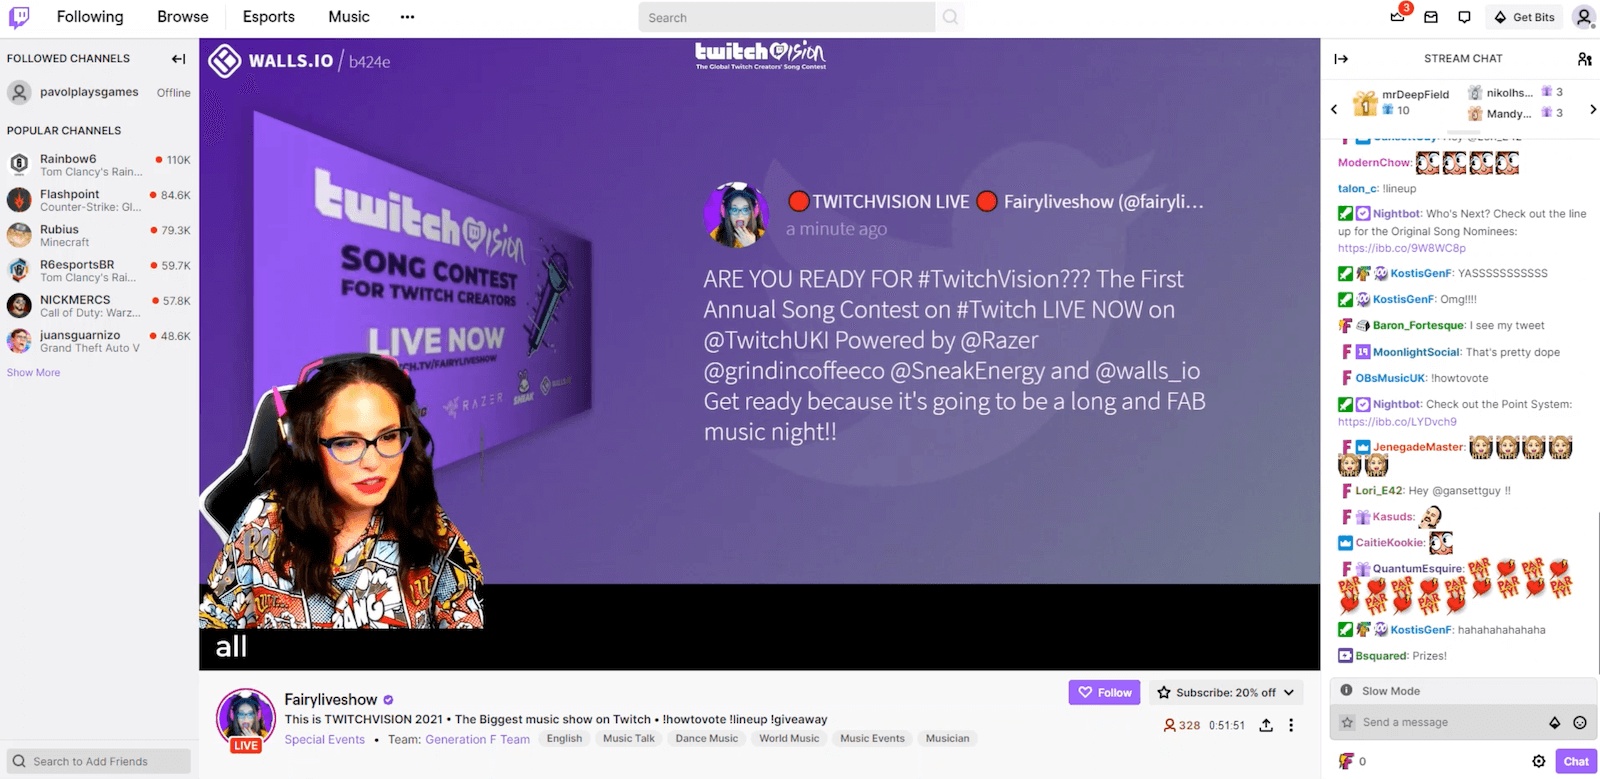 Screenshot from the TwitchVision live-stream with the broadcast showing in the middle and the very active chat pane on the right-hand side. On the stream, Marili is presenting a post from the social wall which is projected on the screen behind her.